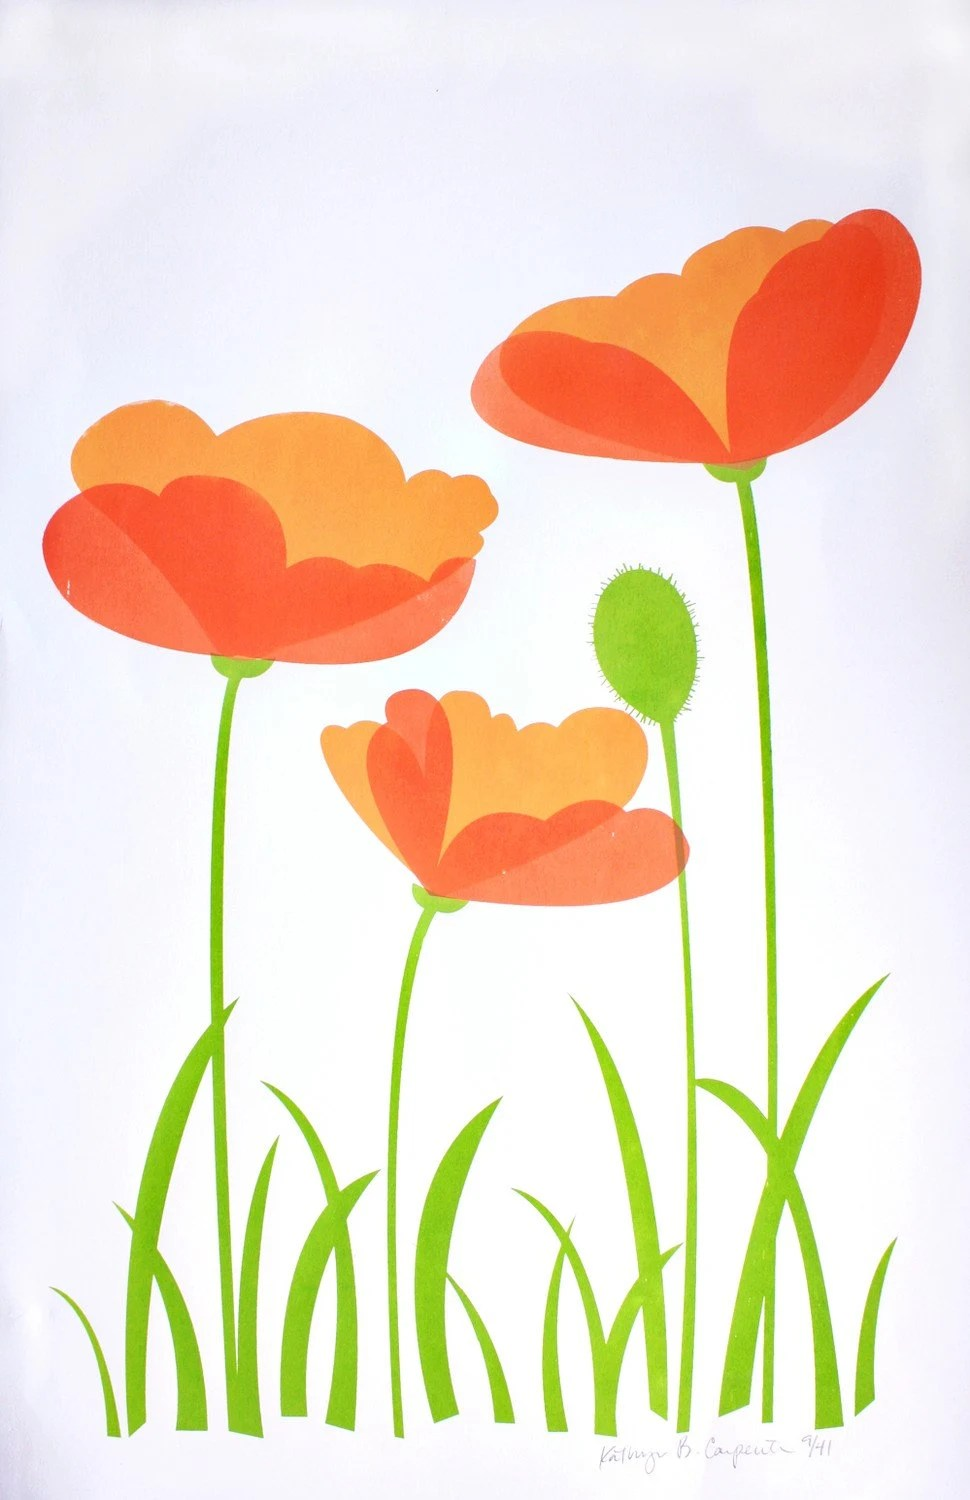 Evening Poppies (Hand-pulled screenprint)